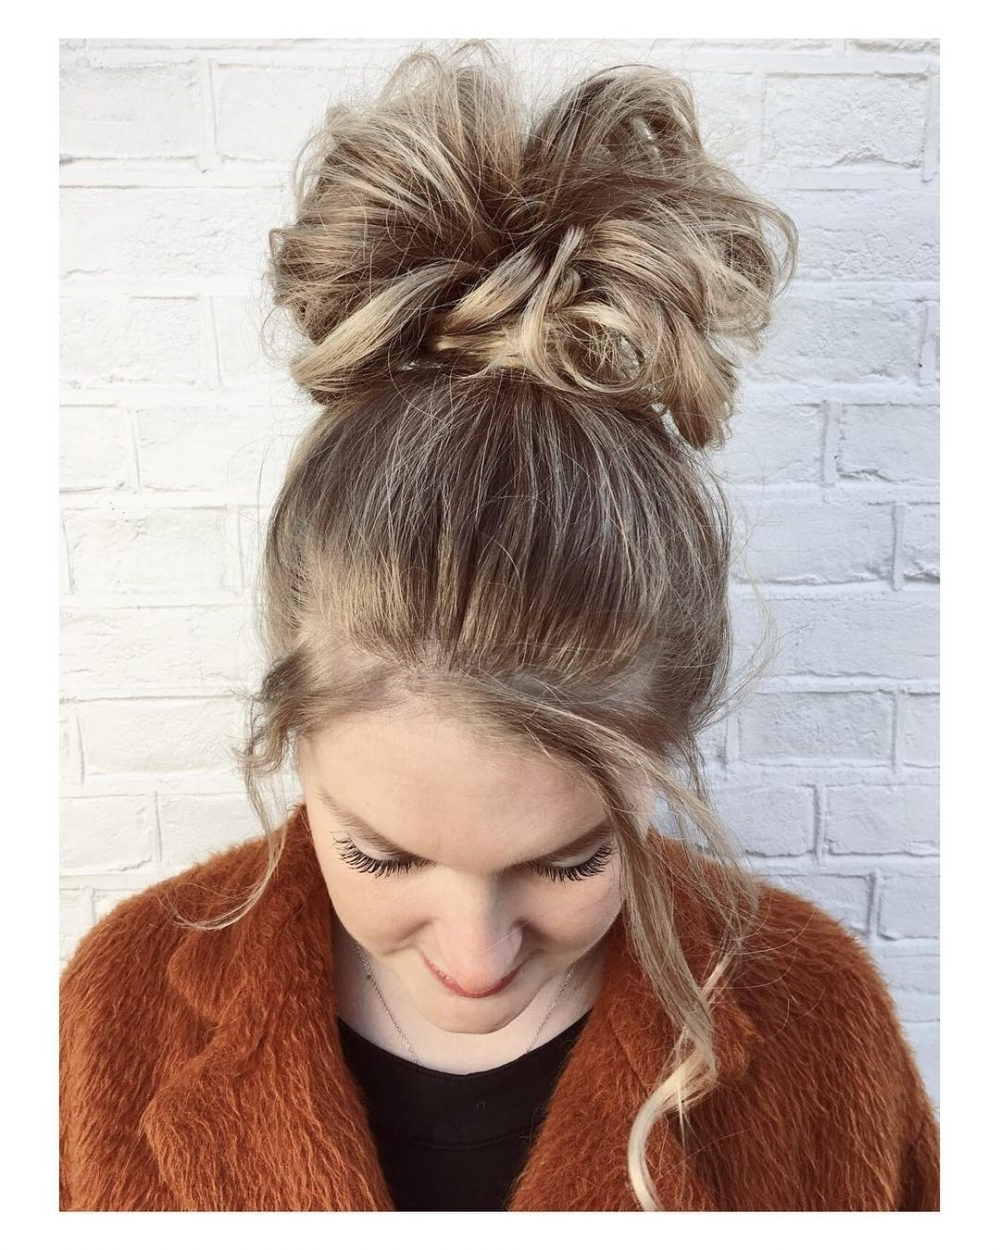 34 Easy Updos For Long Hair Trending For 2018 Throughout Long Hair Easy Updo Hairstyles (View 5 of 15)